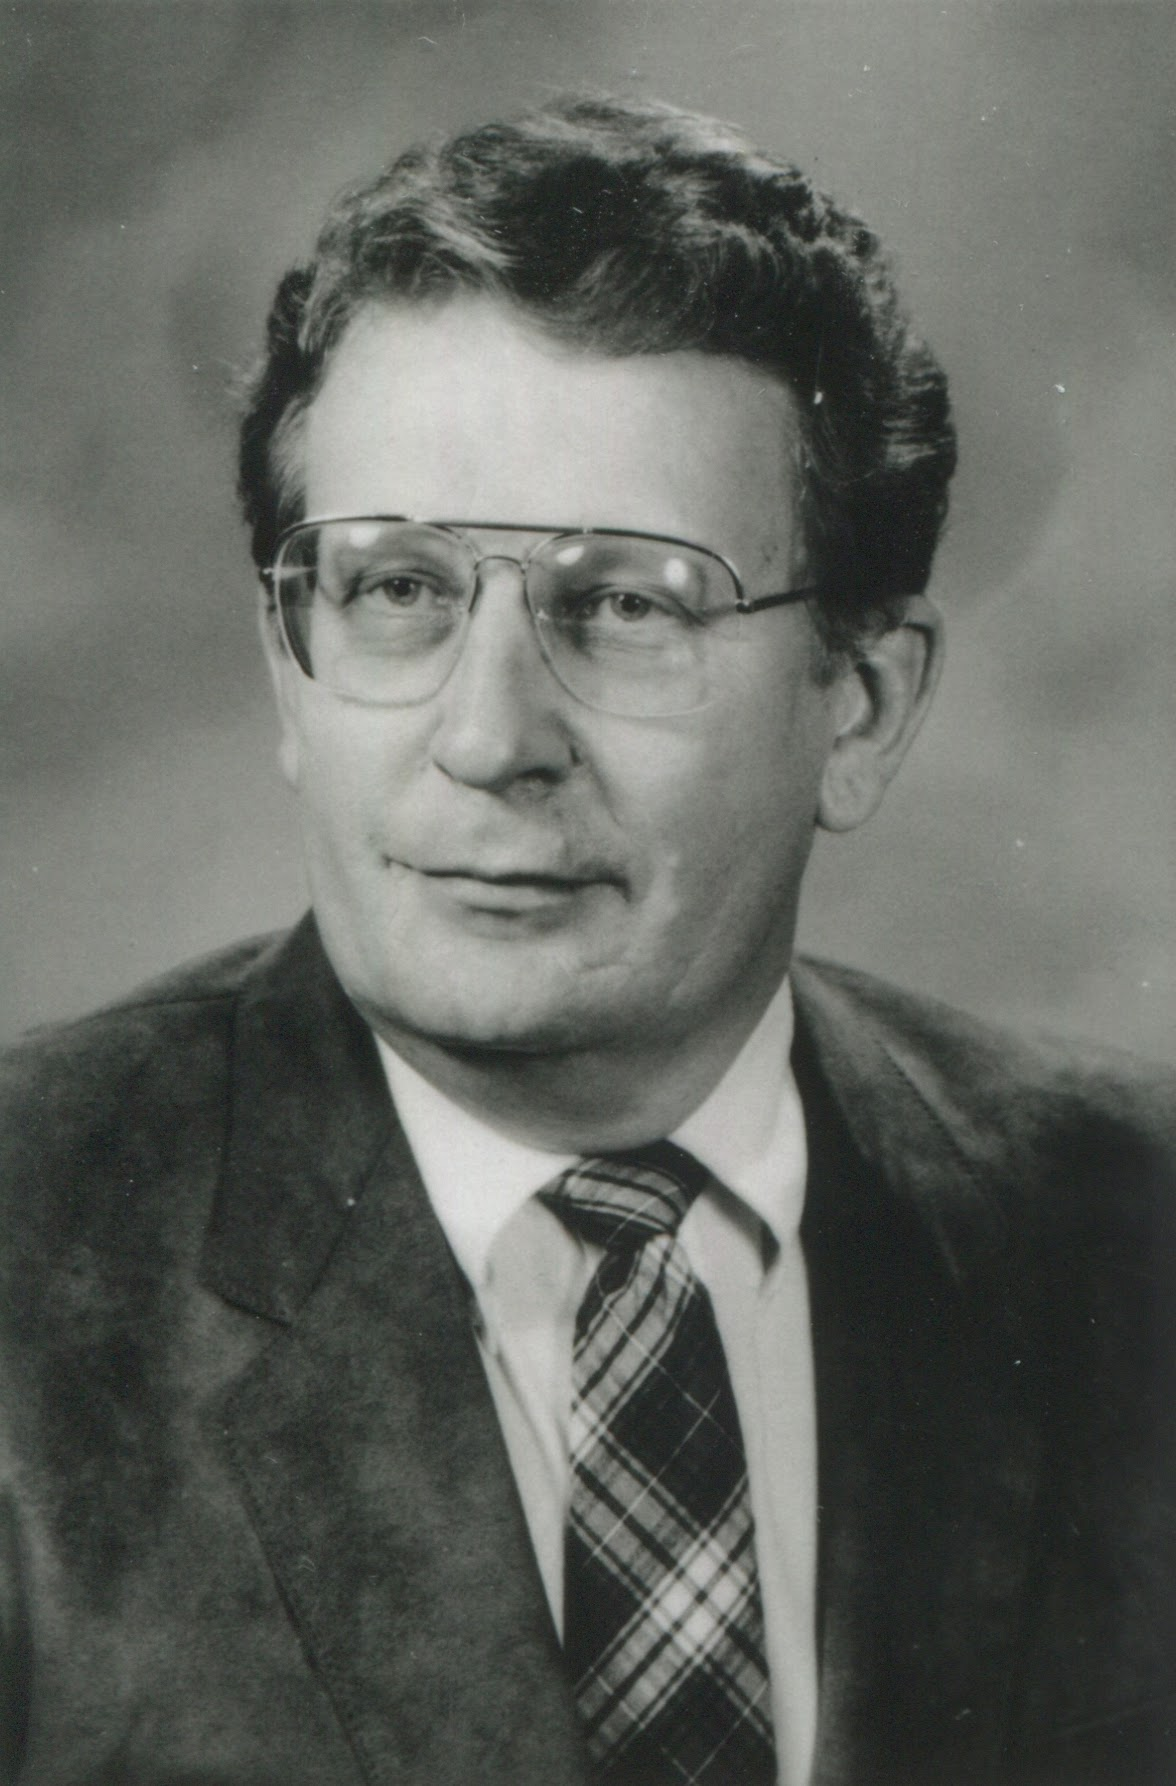 Ted M. Phillips